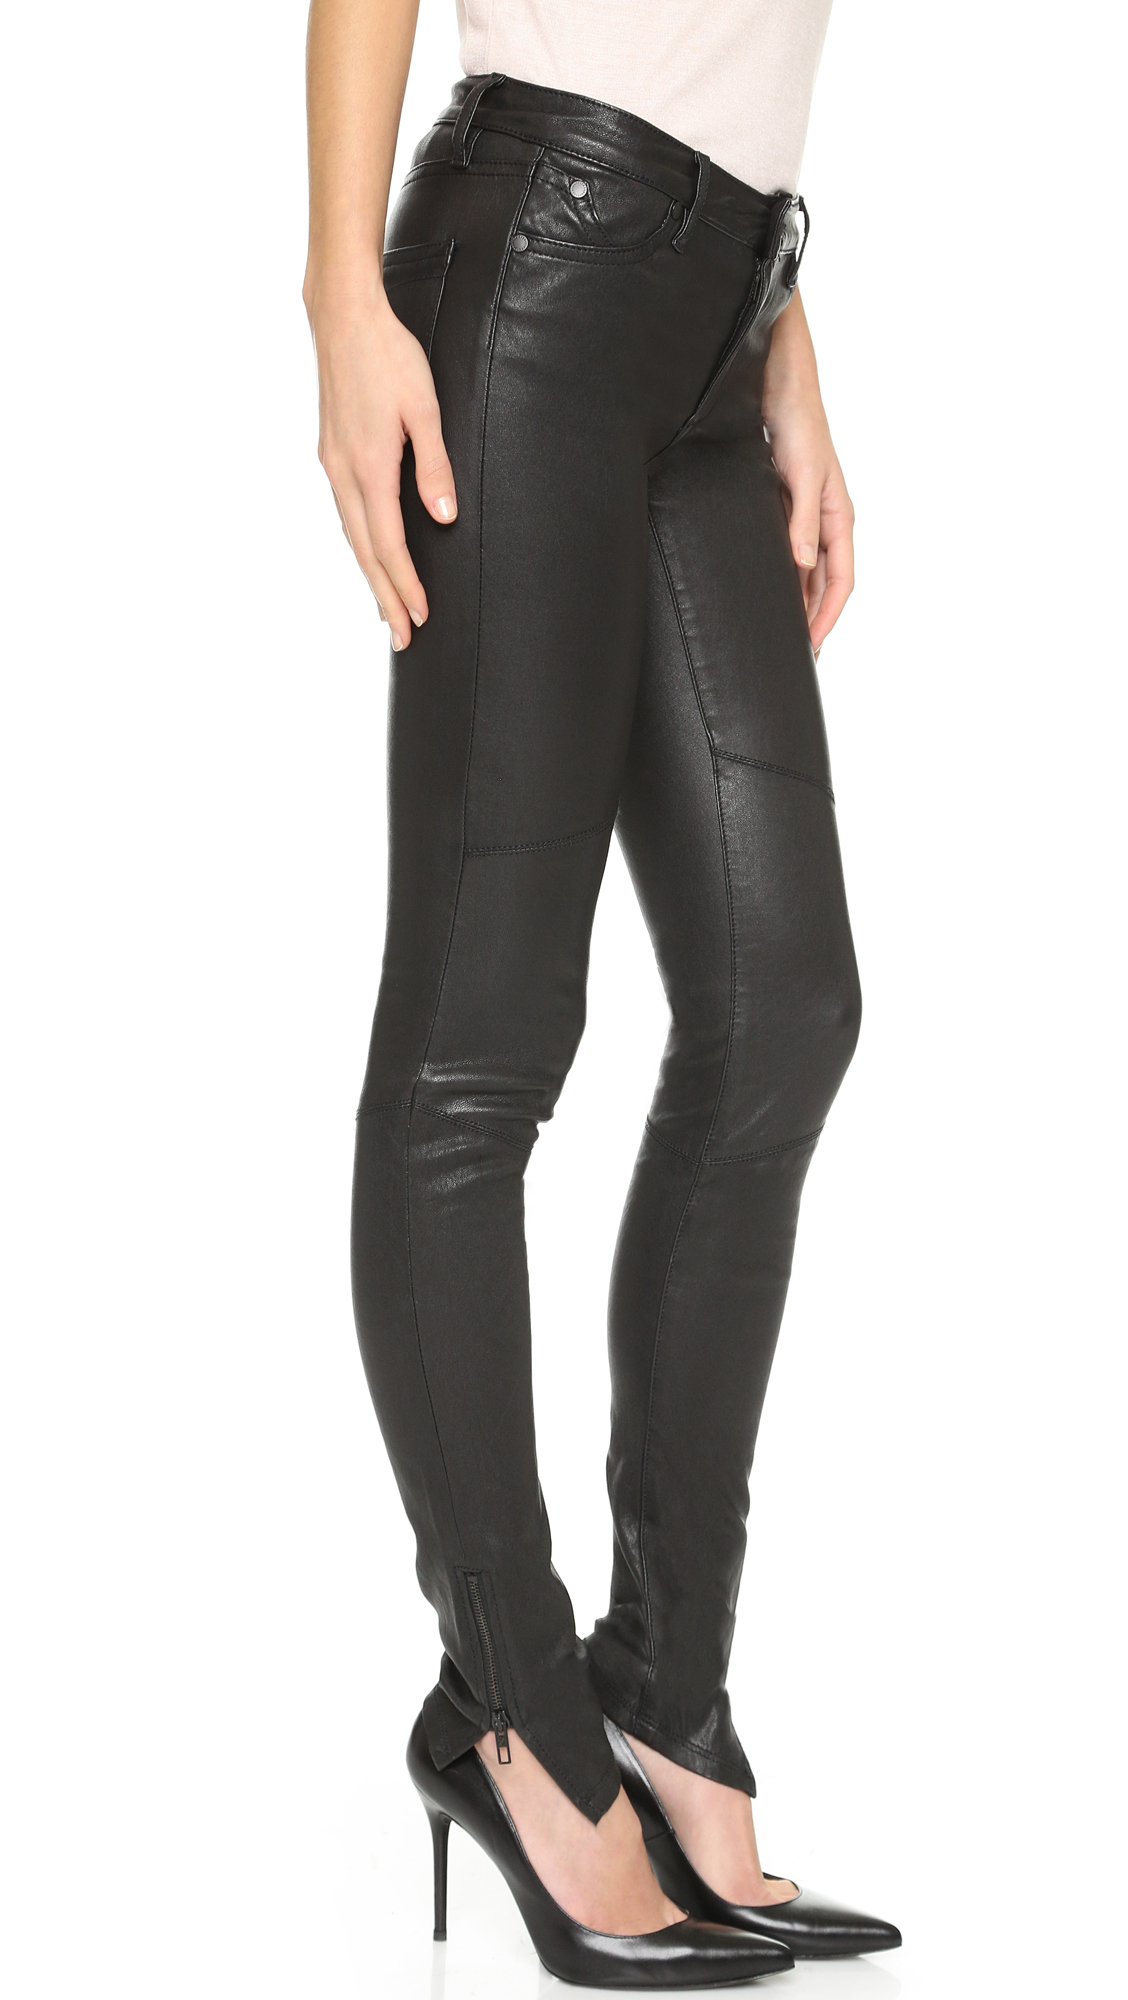 Leather Pants. invalid category id. Leather Pants. Showing 48 of results that match your query. Search Product Result. Product - HDE Sexy Faux Leather Leggings High Waisted Tight Pants for Women. Product Image. Price $ Product Title.